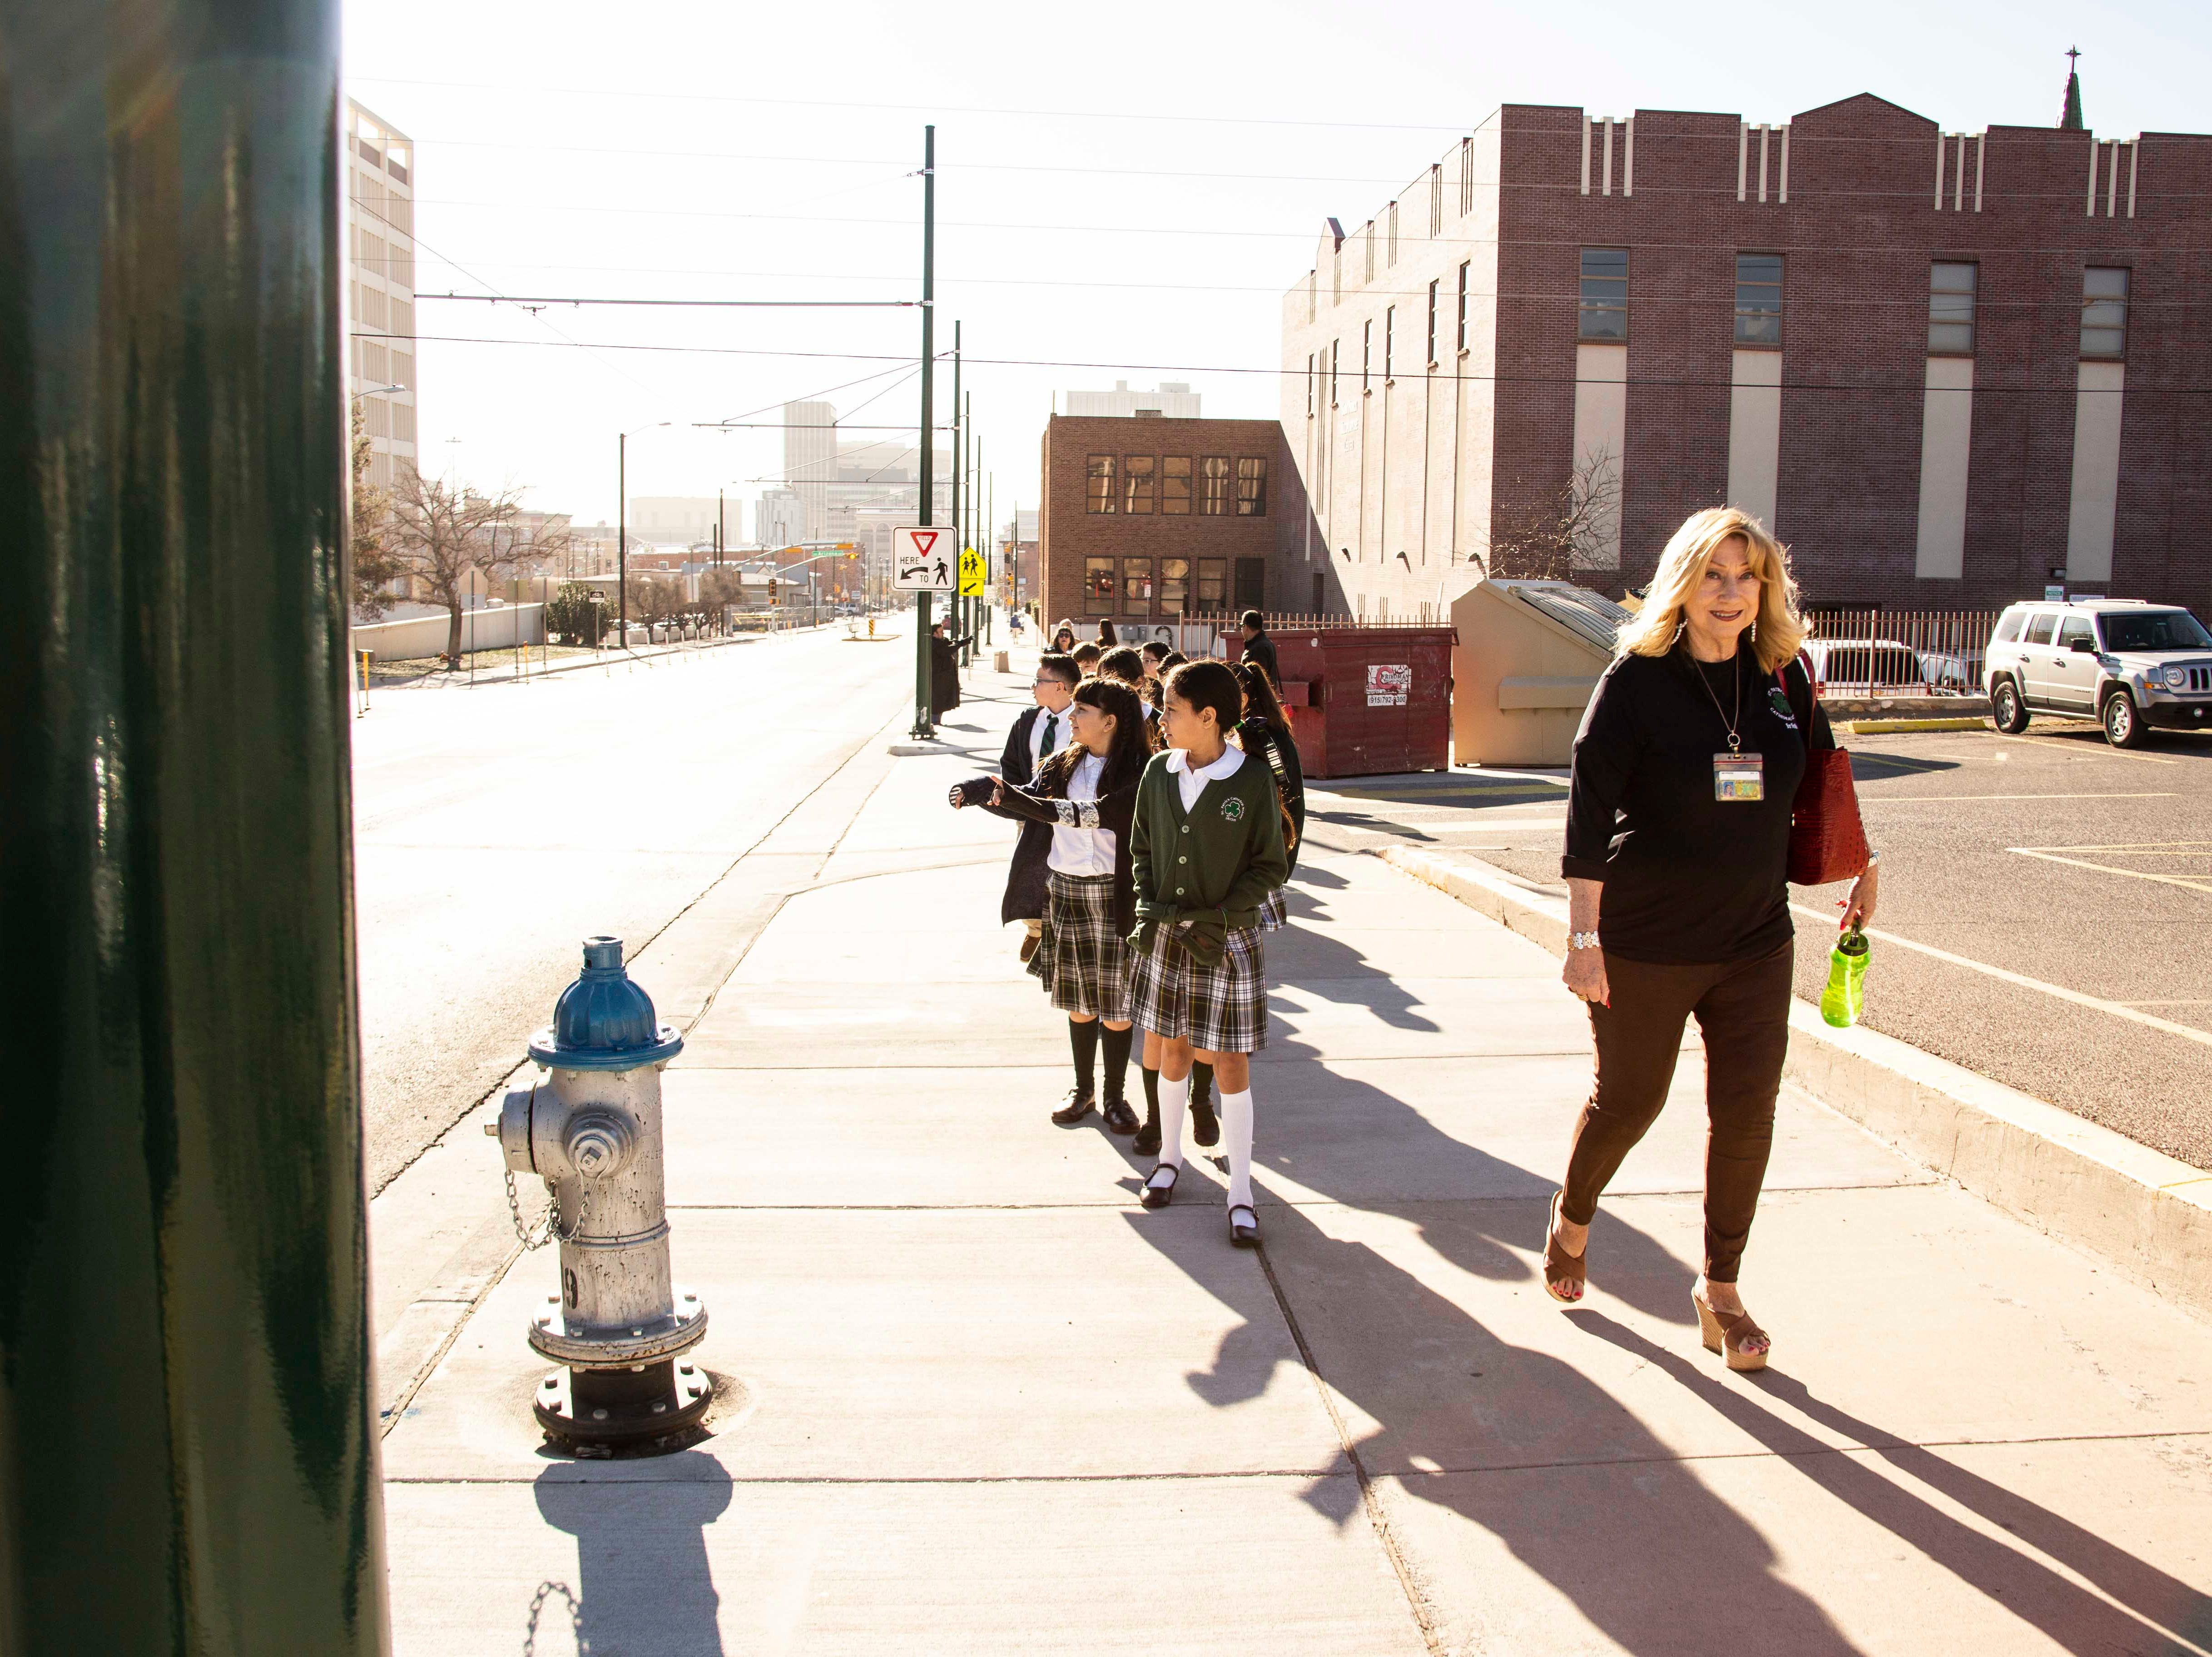 Students at St. Patrick's School, 1111 N Stanton St., celebrated the kickoff of Catholic Schools Week on Friday by riding the streetcars in Downtown El Paso. Catholic Schools Week 2019 will be celebrated from Sunday, Jan. 27, through Saturday, Feb. 2.